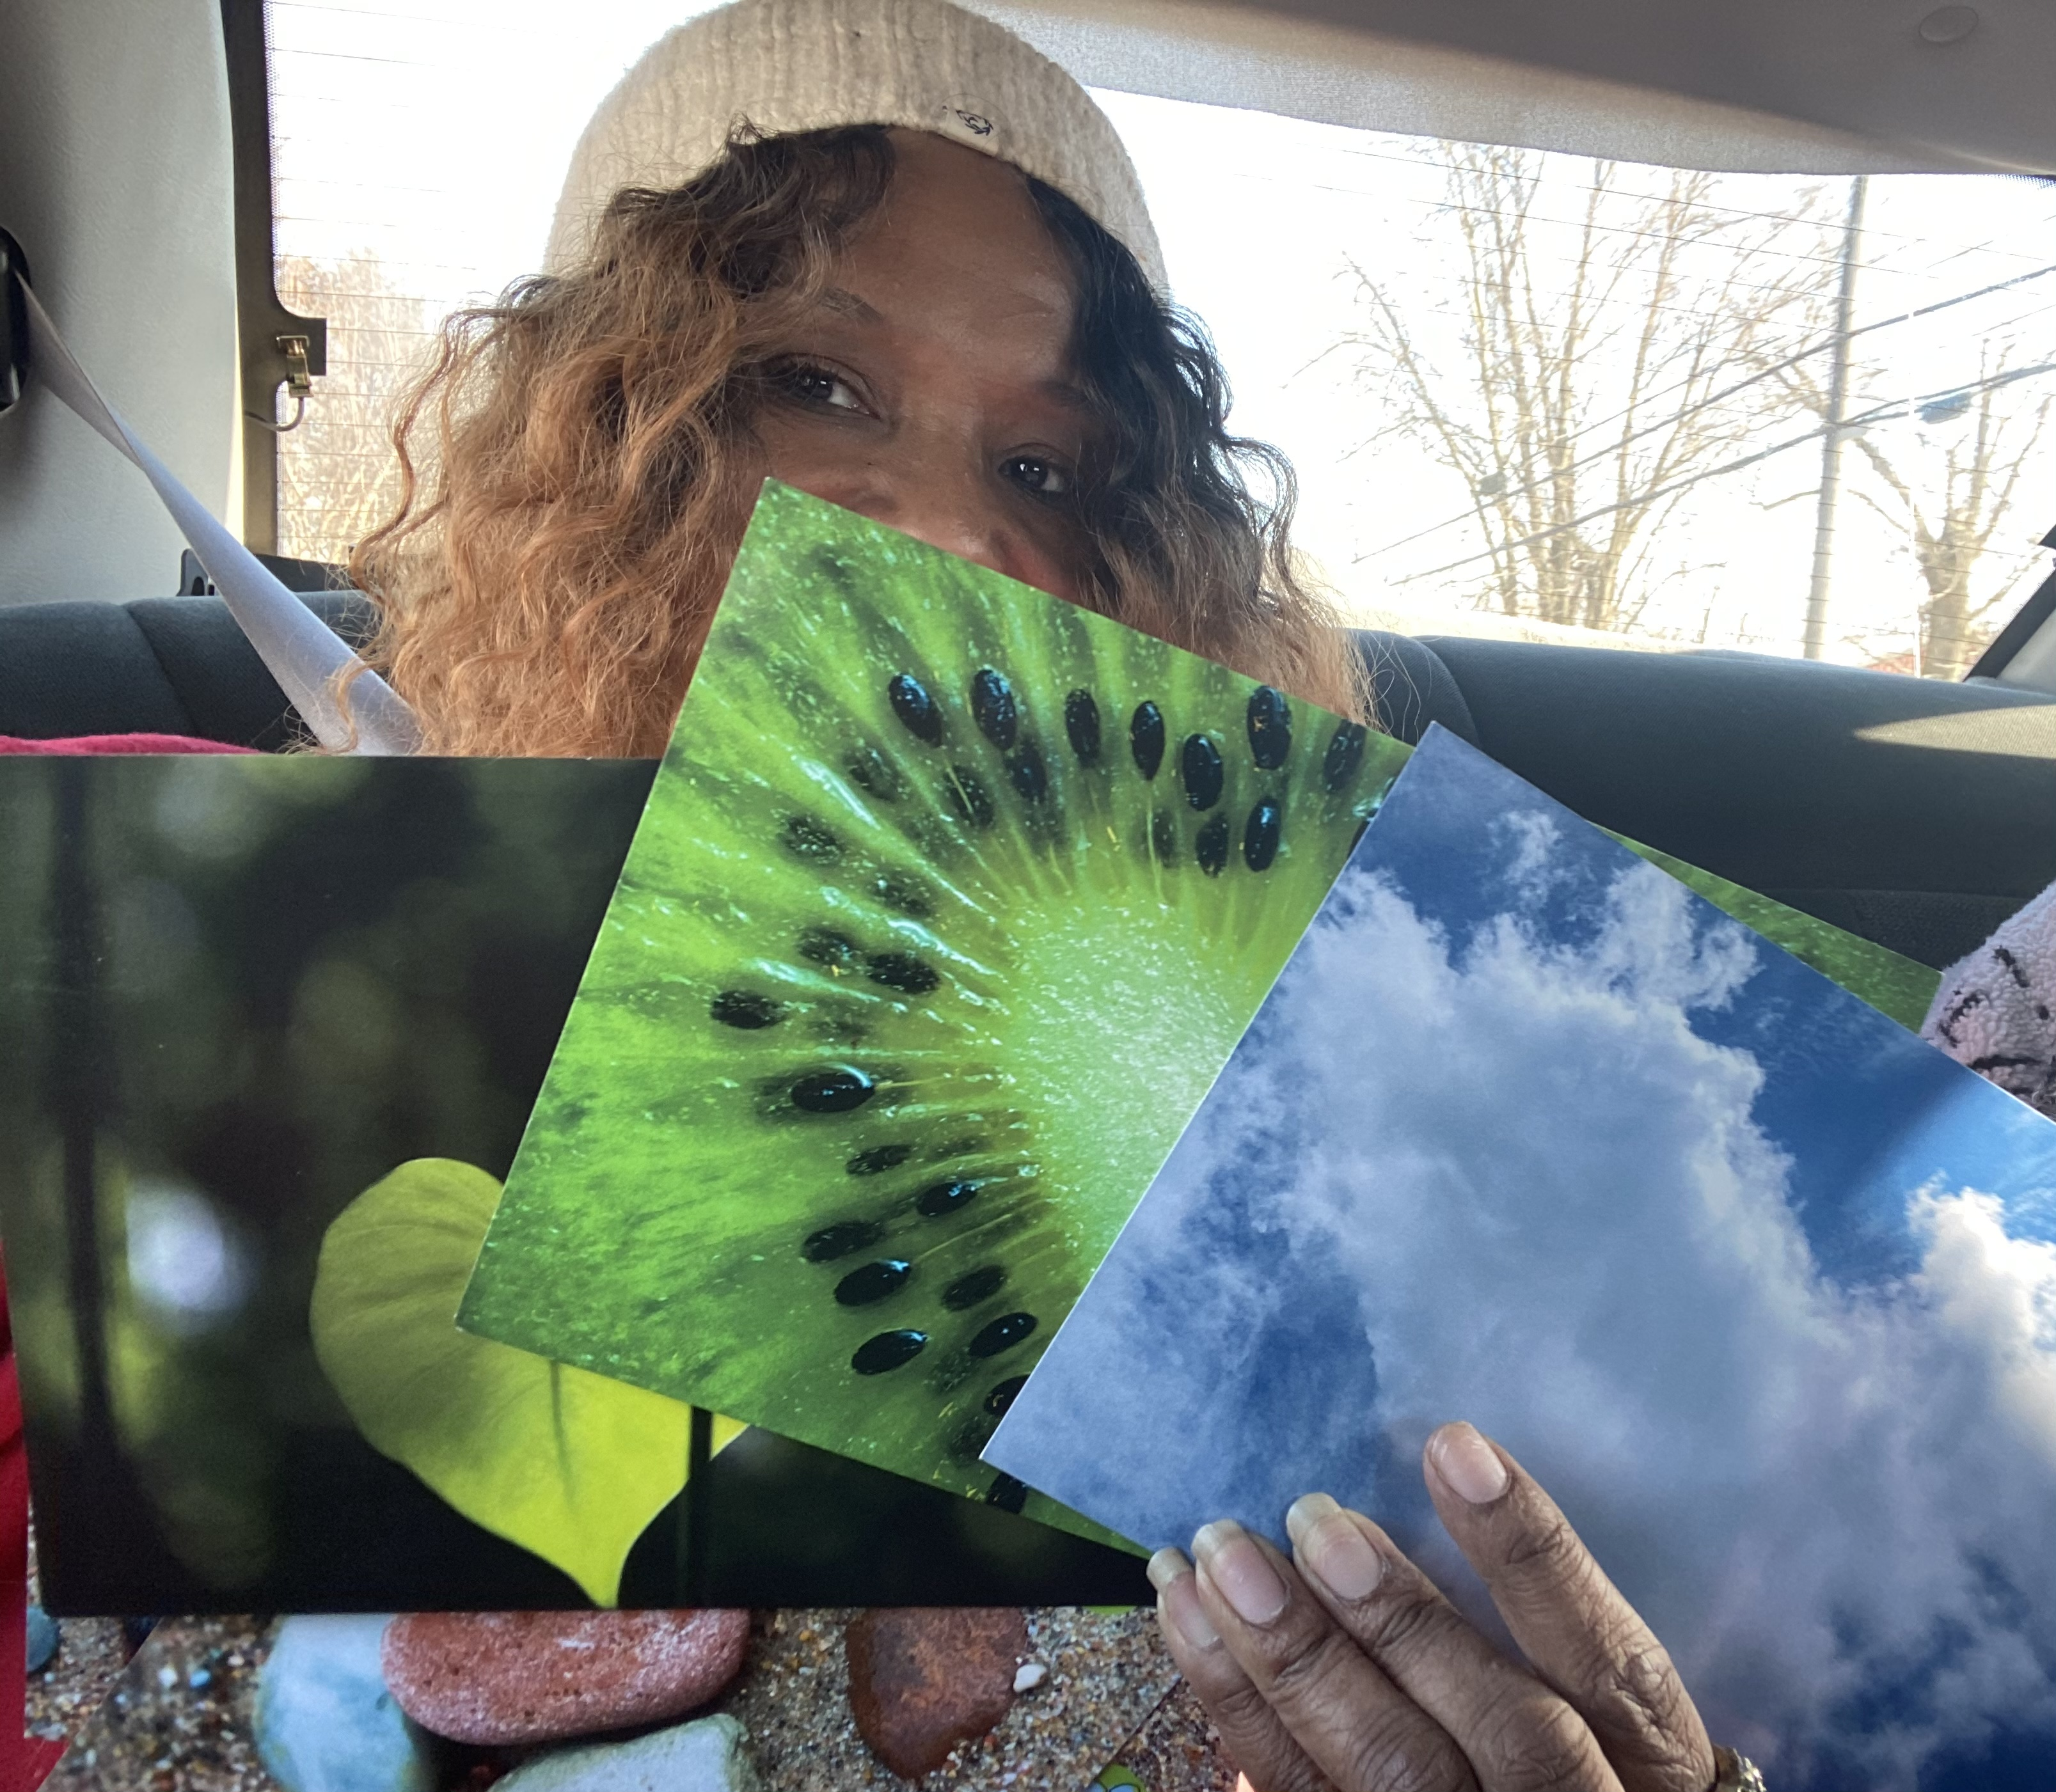 Maria showing some of the postcards that she sent to ERICU staff at hospitals in the USA